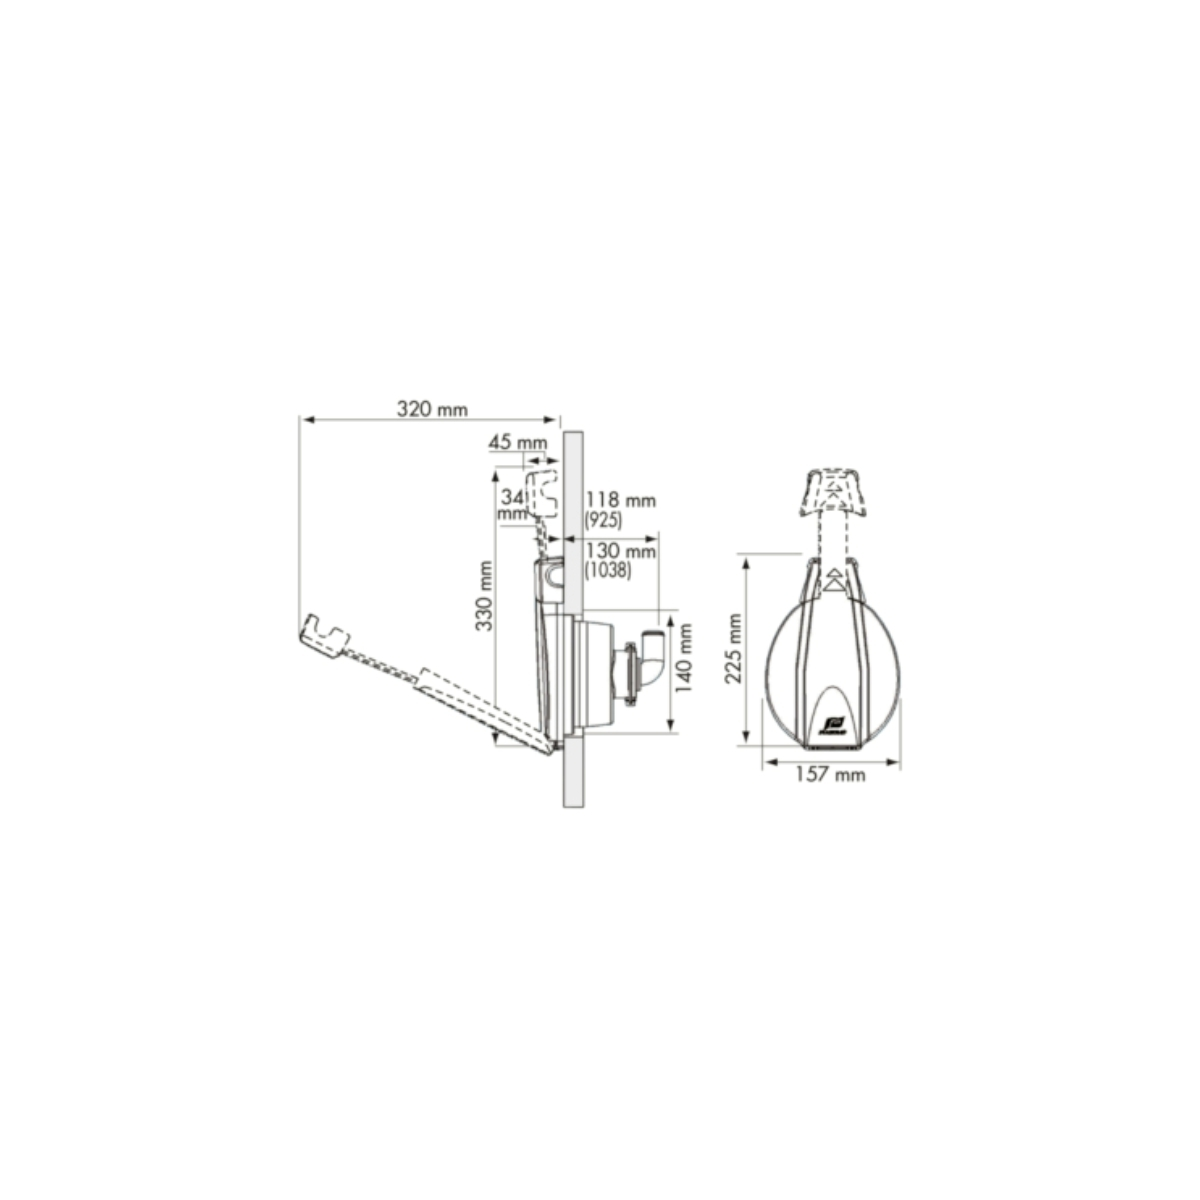 PUMP 925 AND 1038 : WITH TELESCOPIC HANDLE